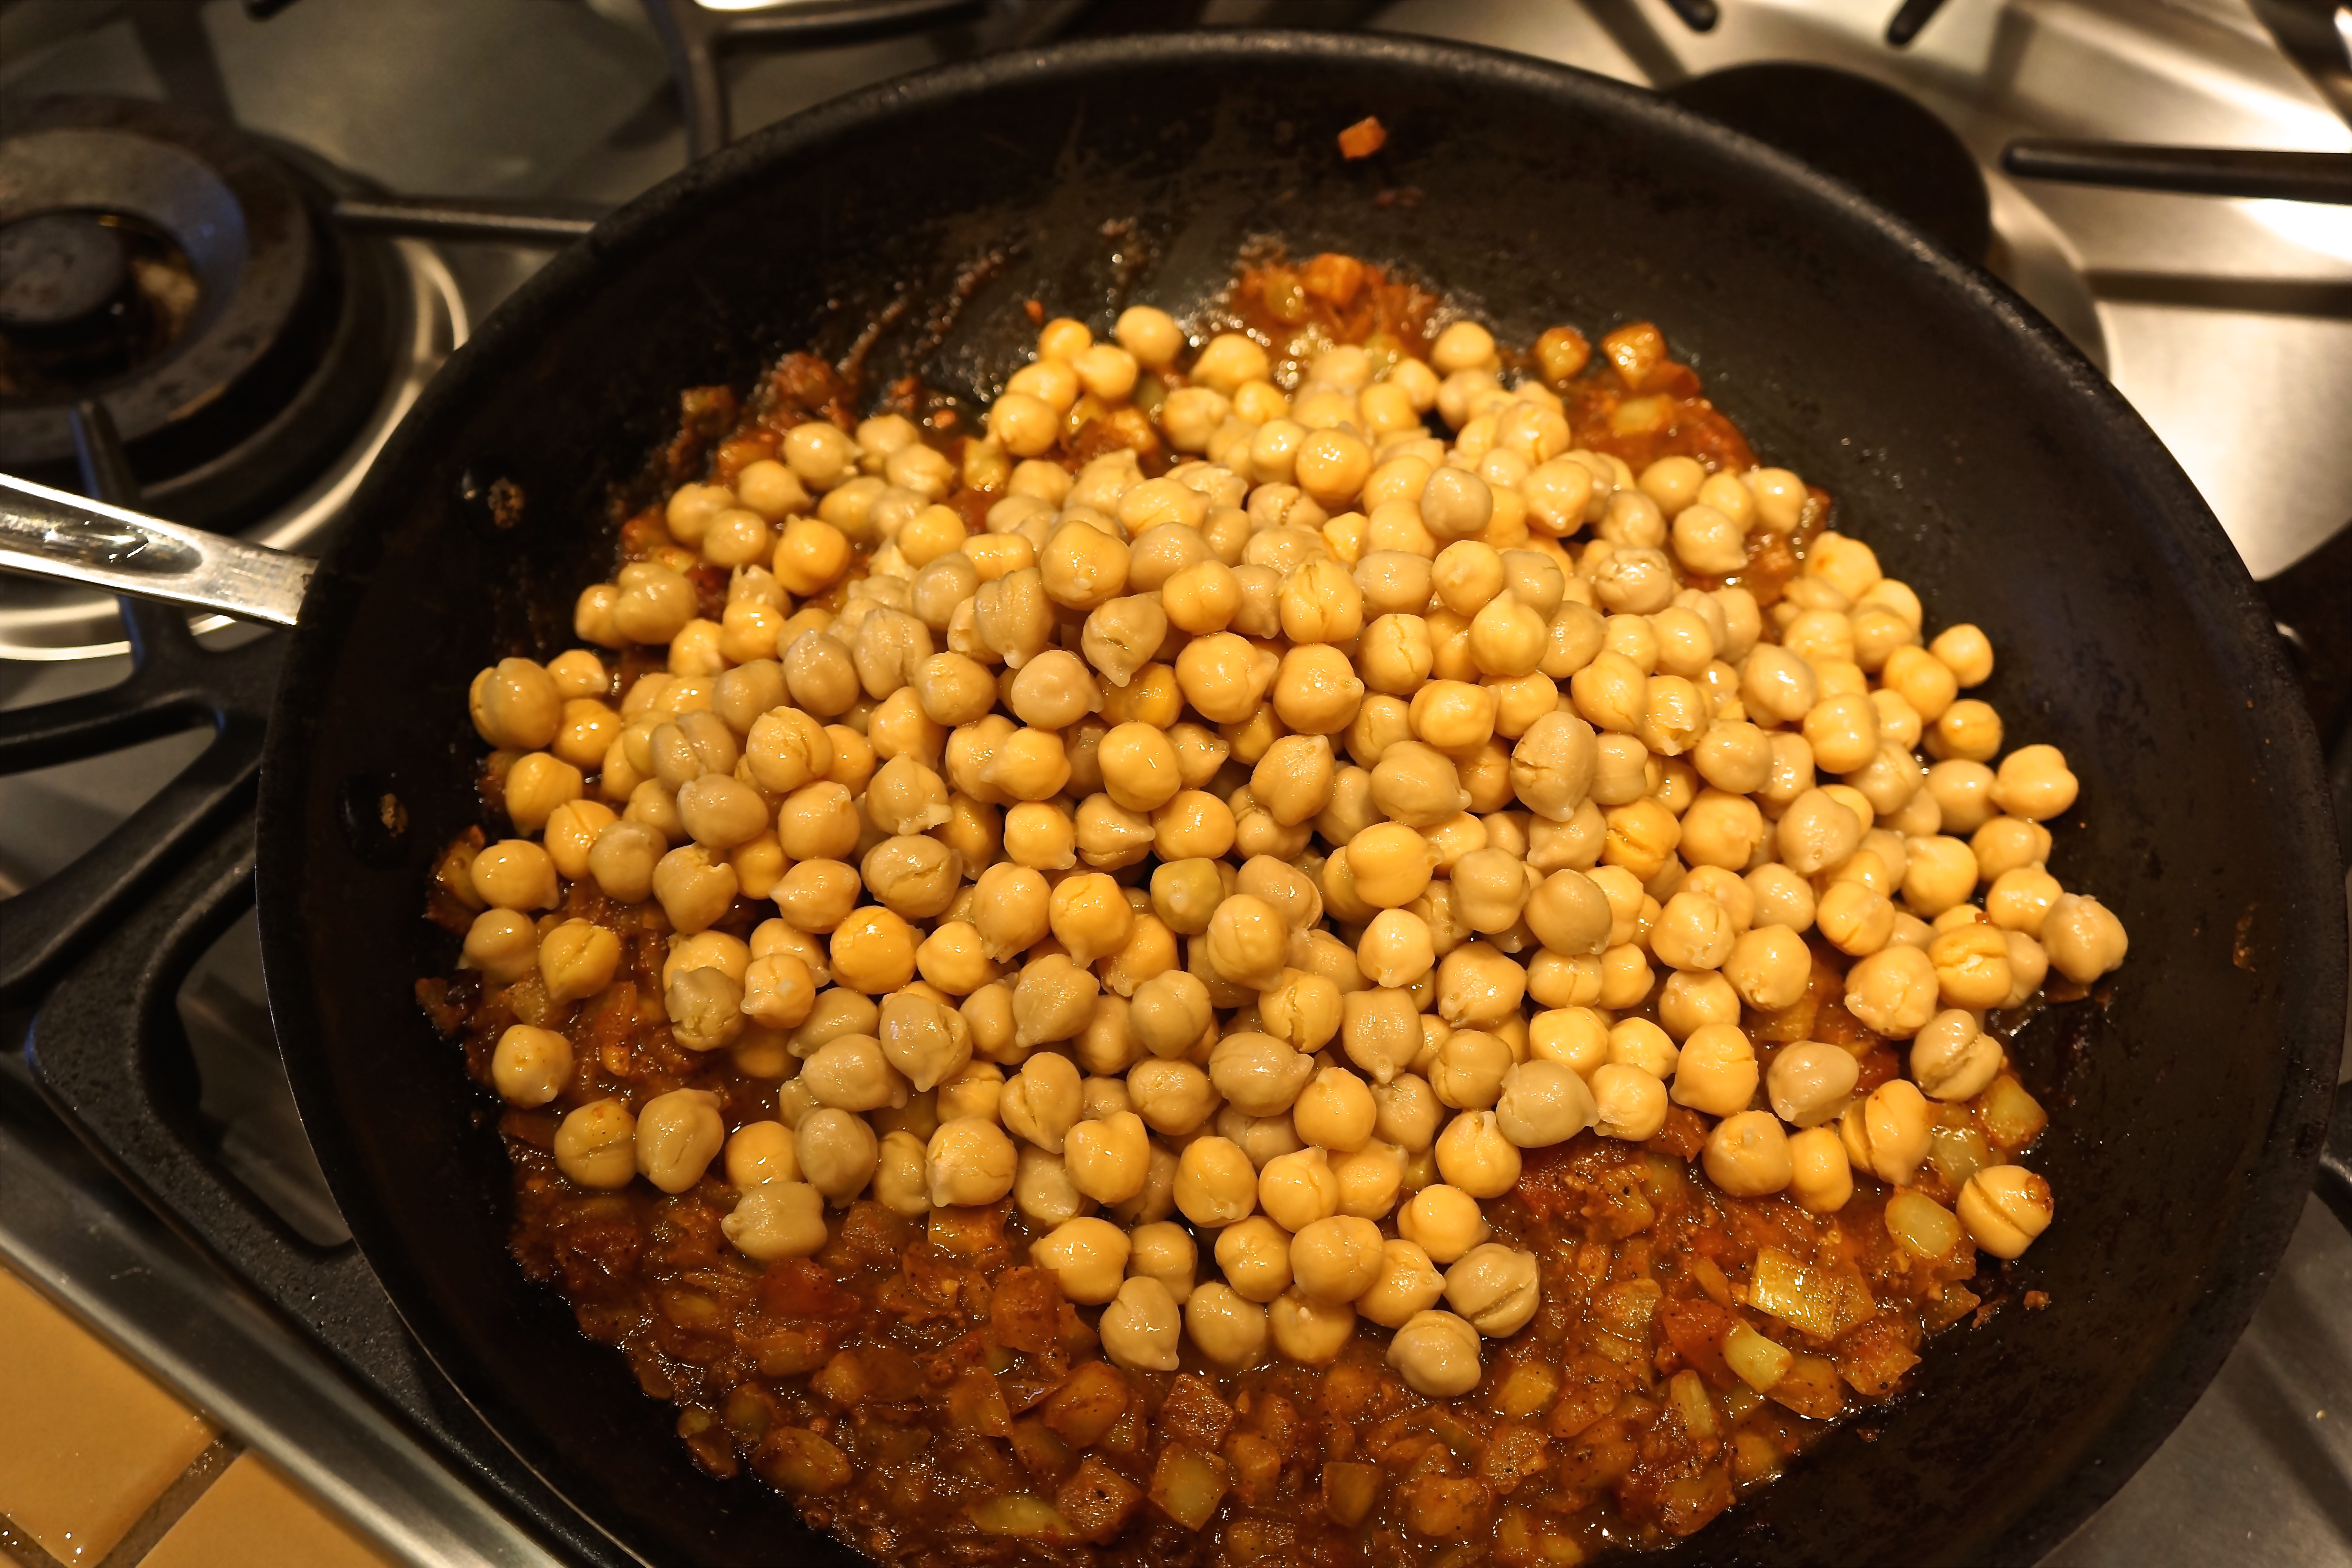 Add garbanzo beans and mix until thoroughly combined.